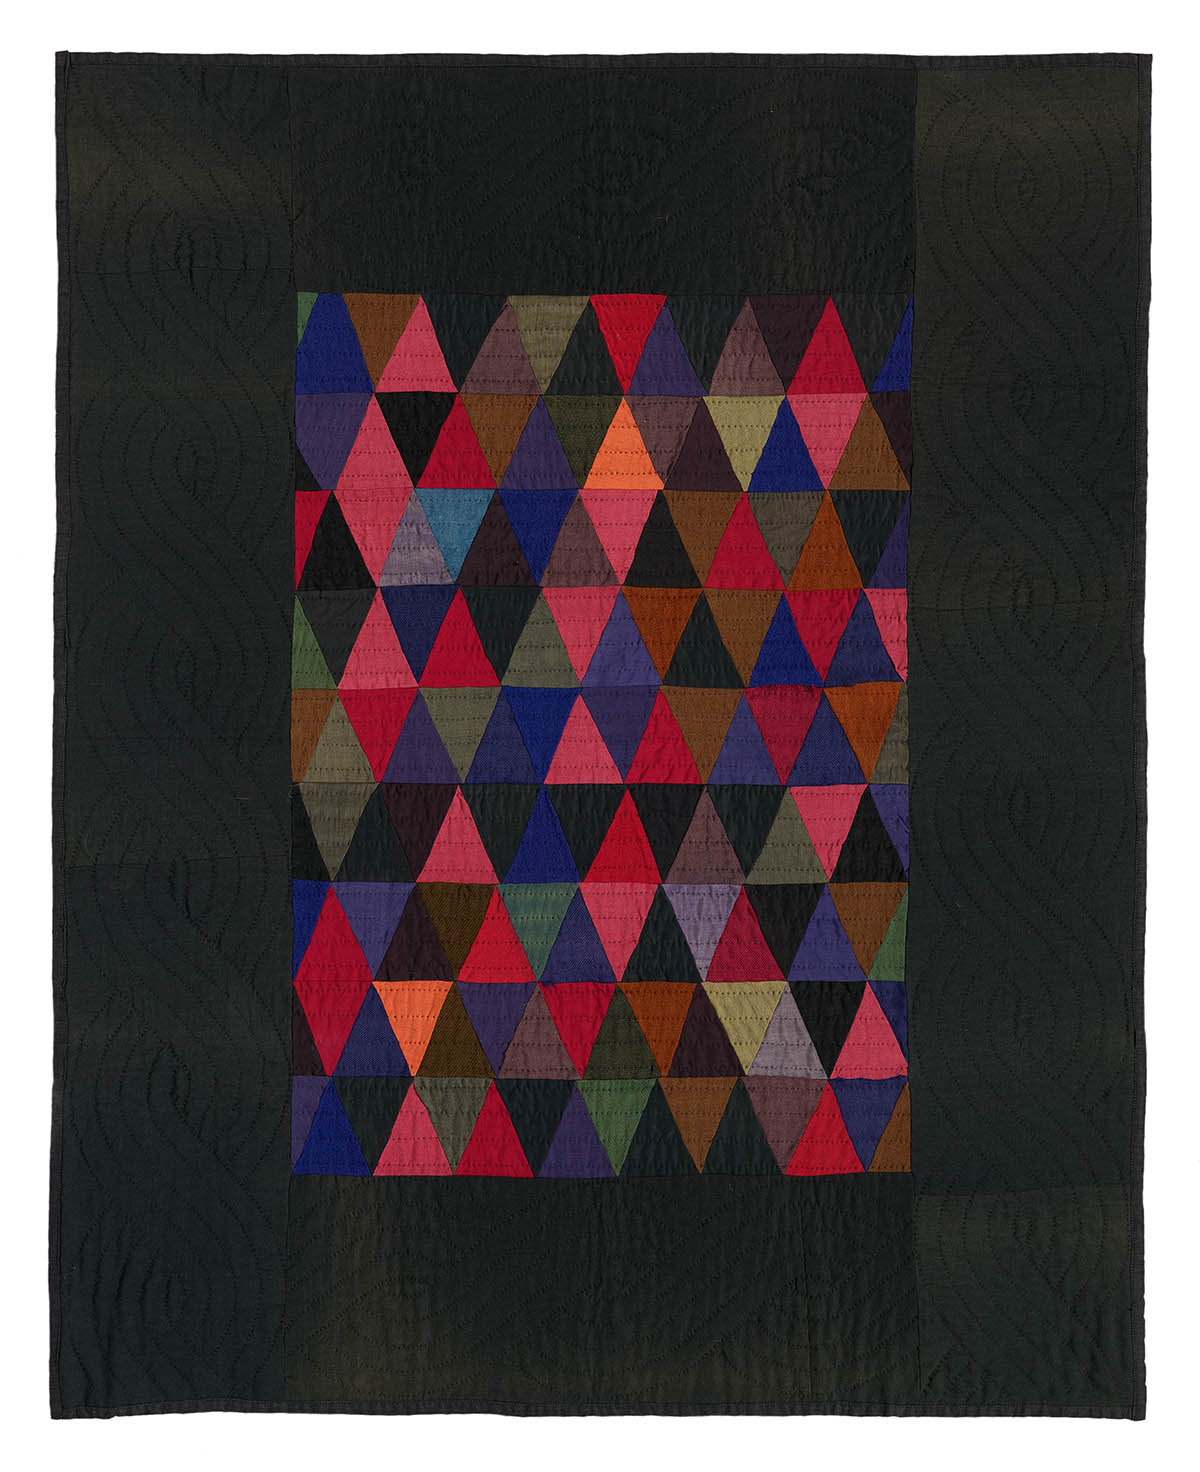 093: Triangles crib quilt, Kalona, Iowa circa 1930 41x33